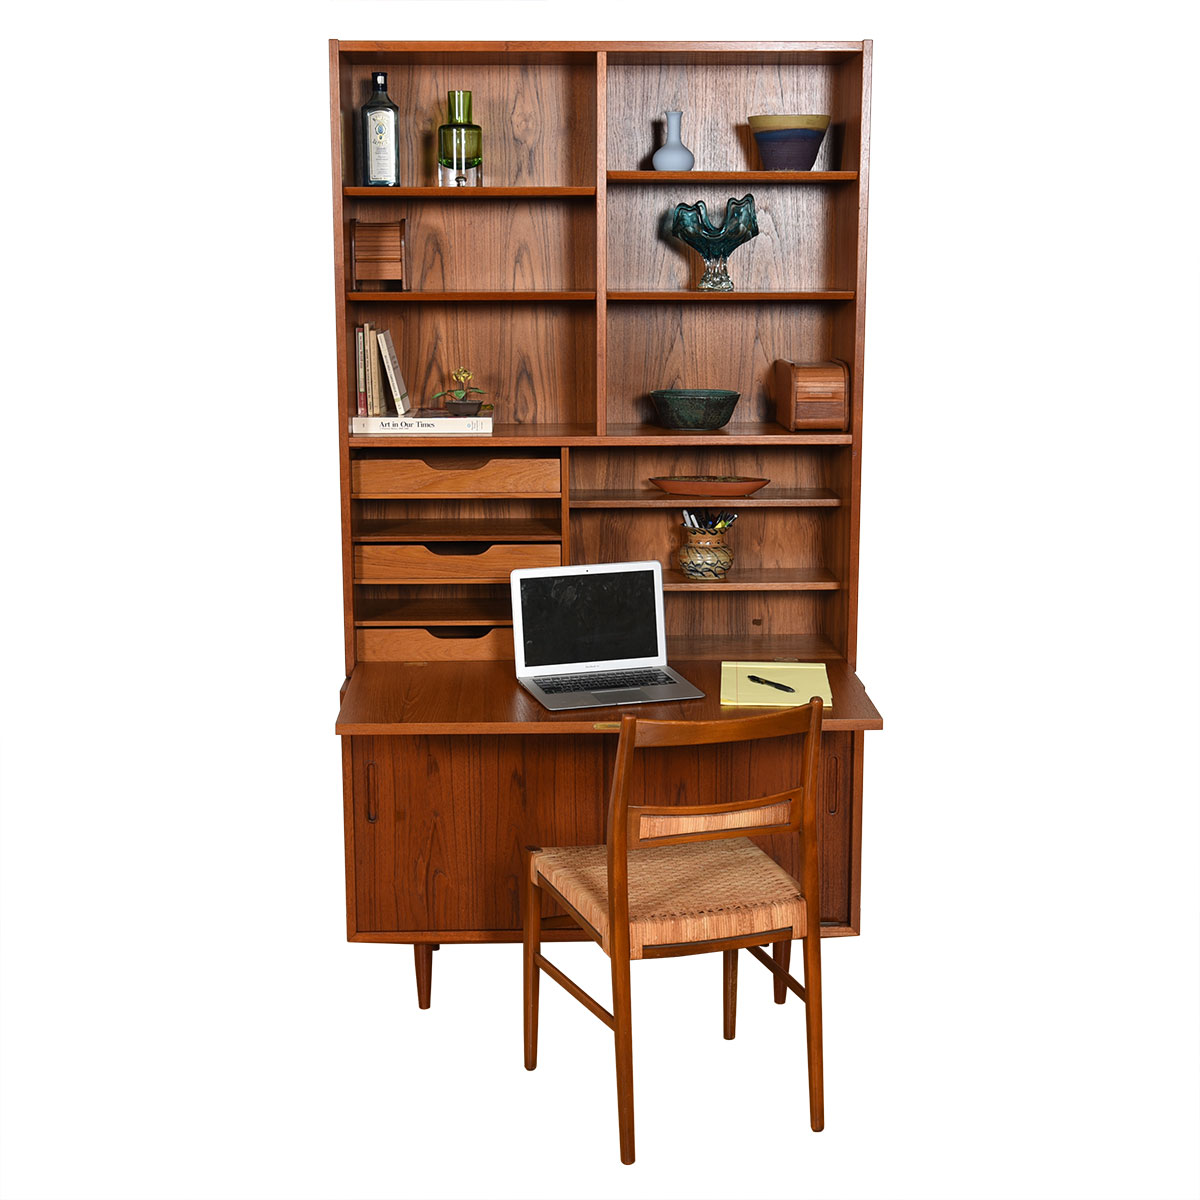 42″ Danish Teak 2 Pc. Drop-Down Secretary / Display Top w/ Sliding Door Cabinet